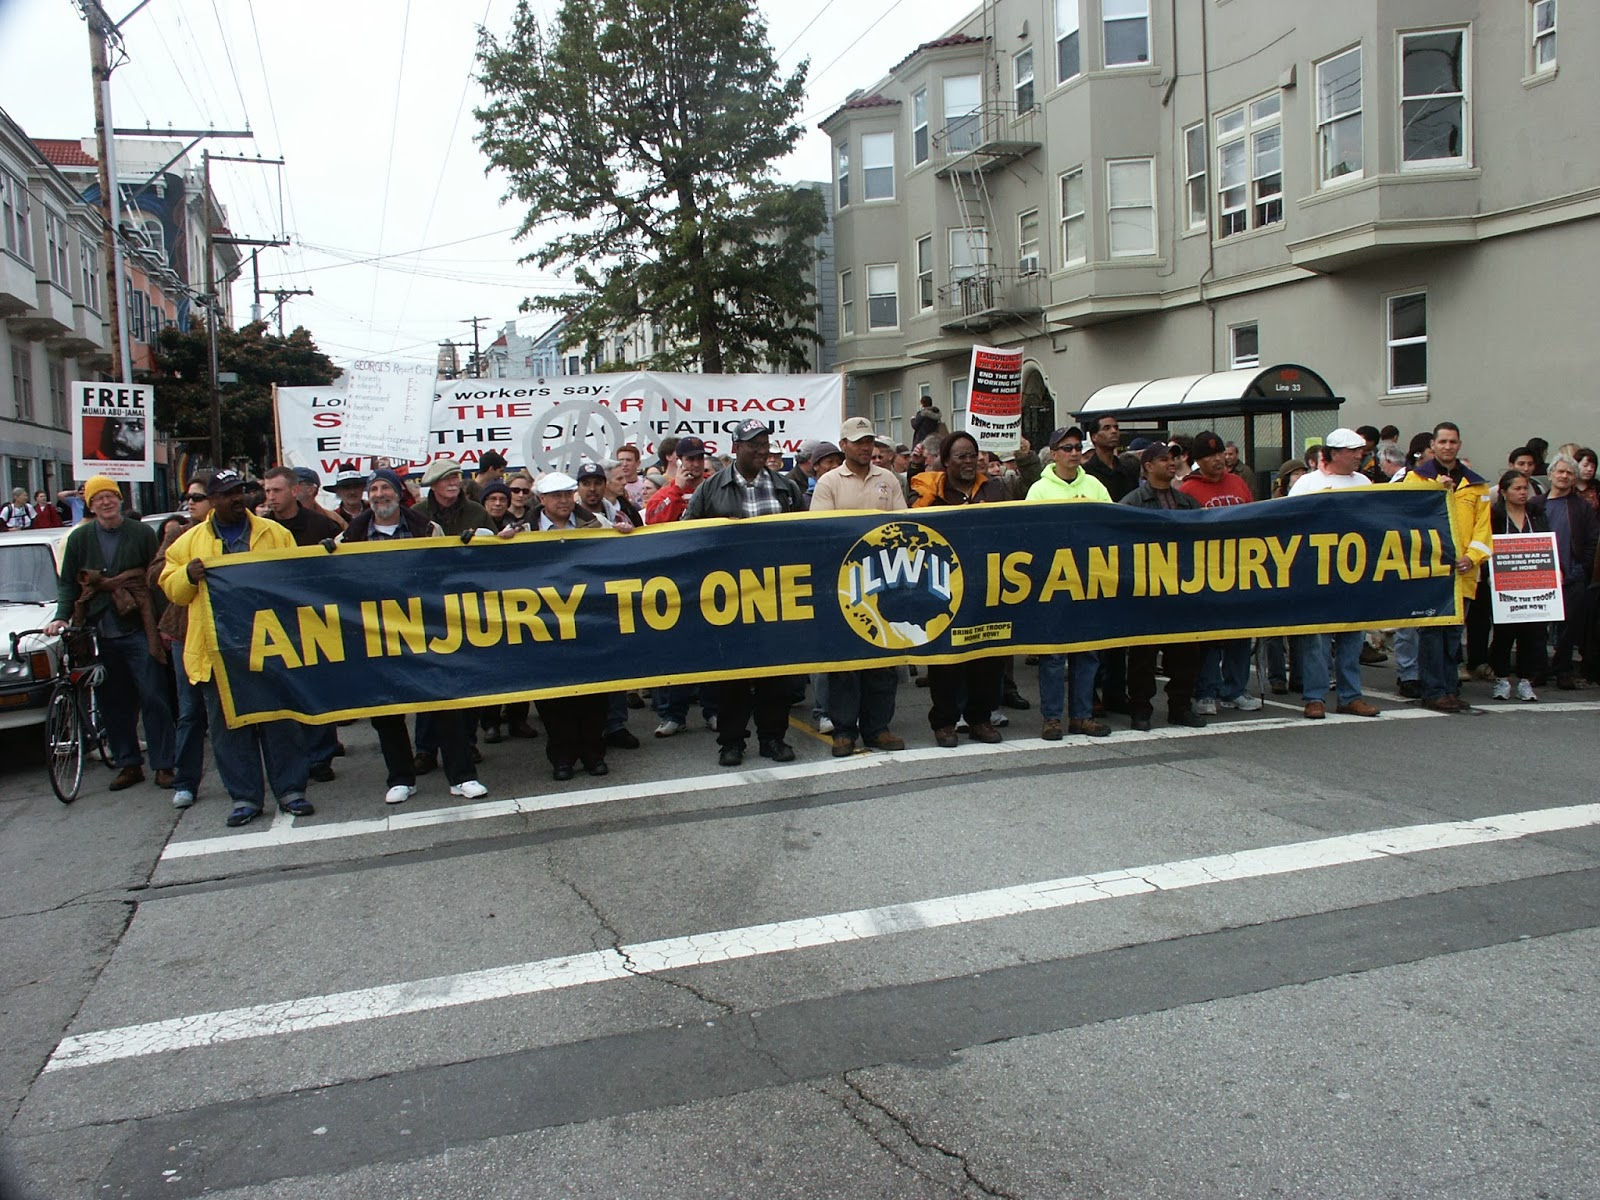 ILWU MEMBERS MARCH IN PEACE RALLY 2003